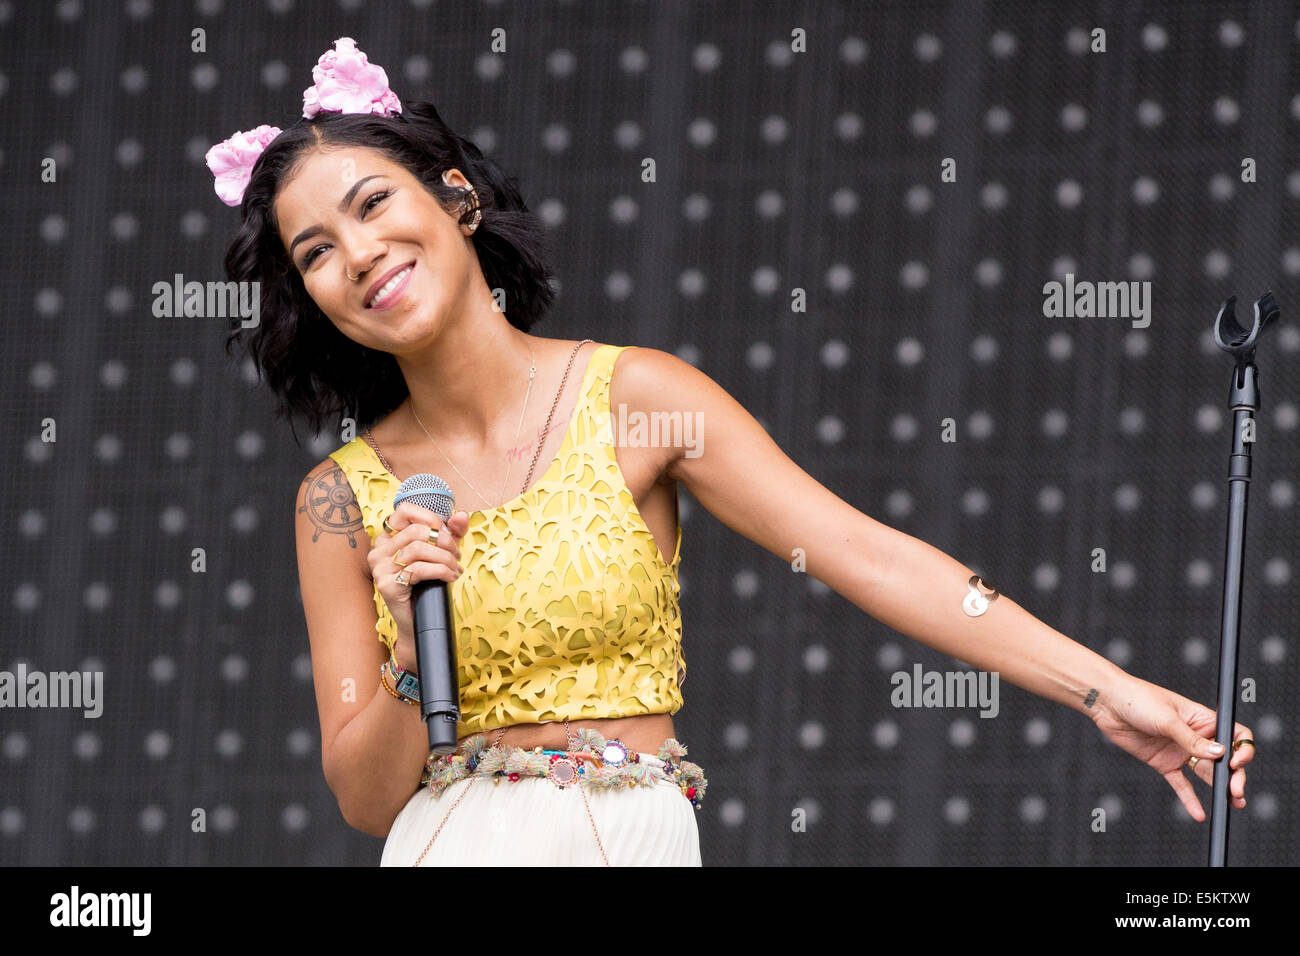 Chicago, Illinois, USA. 3rd Aug, 2014. Vocalist JHENE AIKO performs live at the 2014 Lollapalooza Music Festival - Stock Image